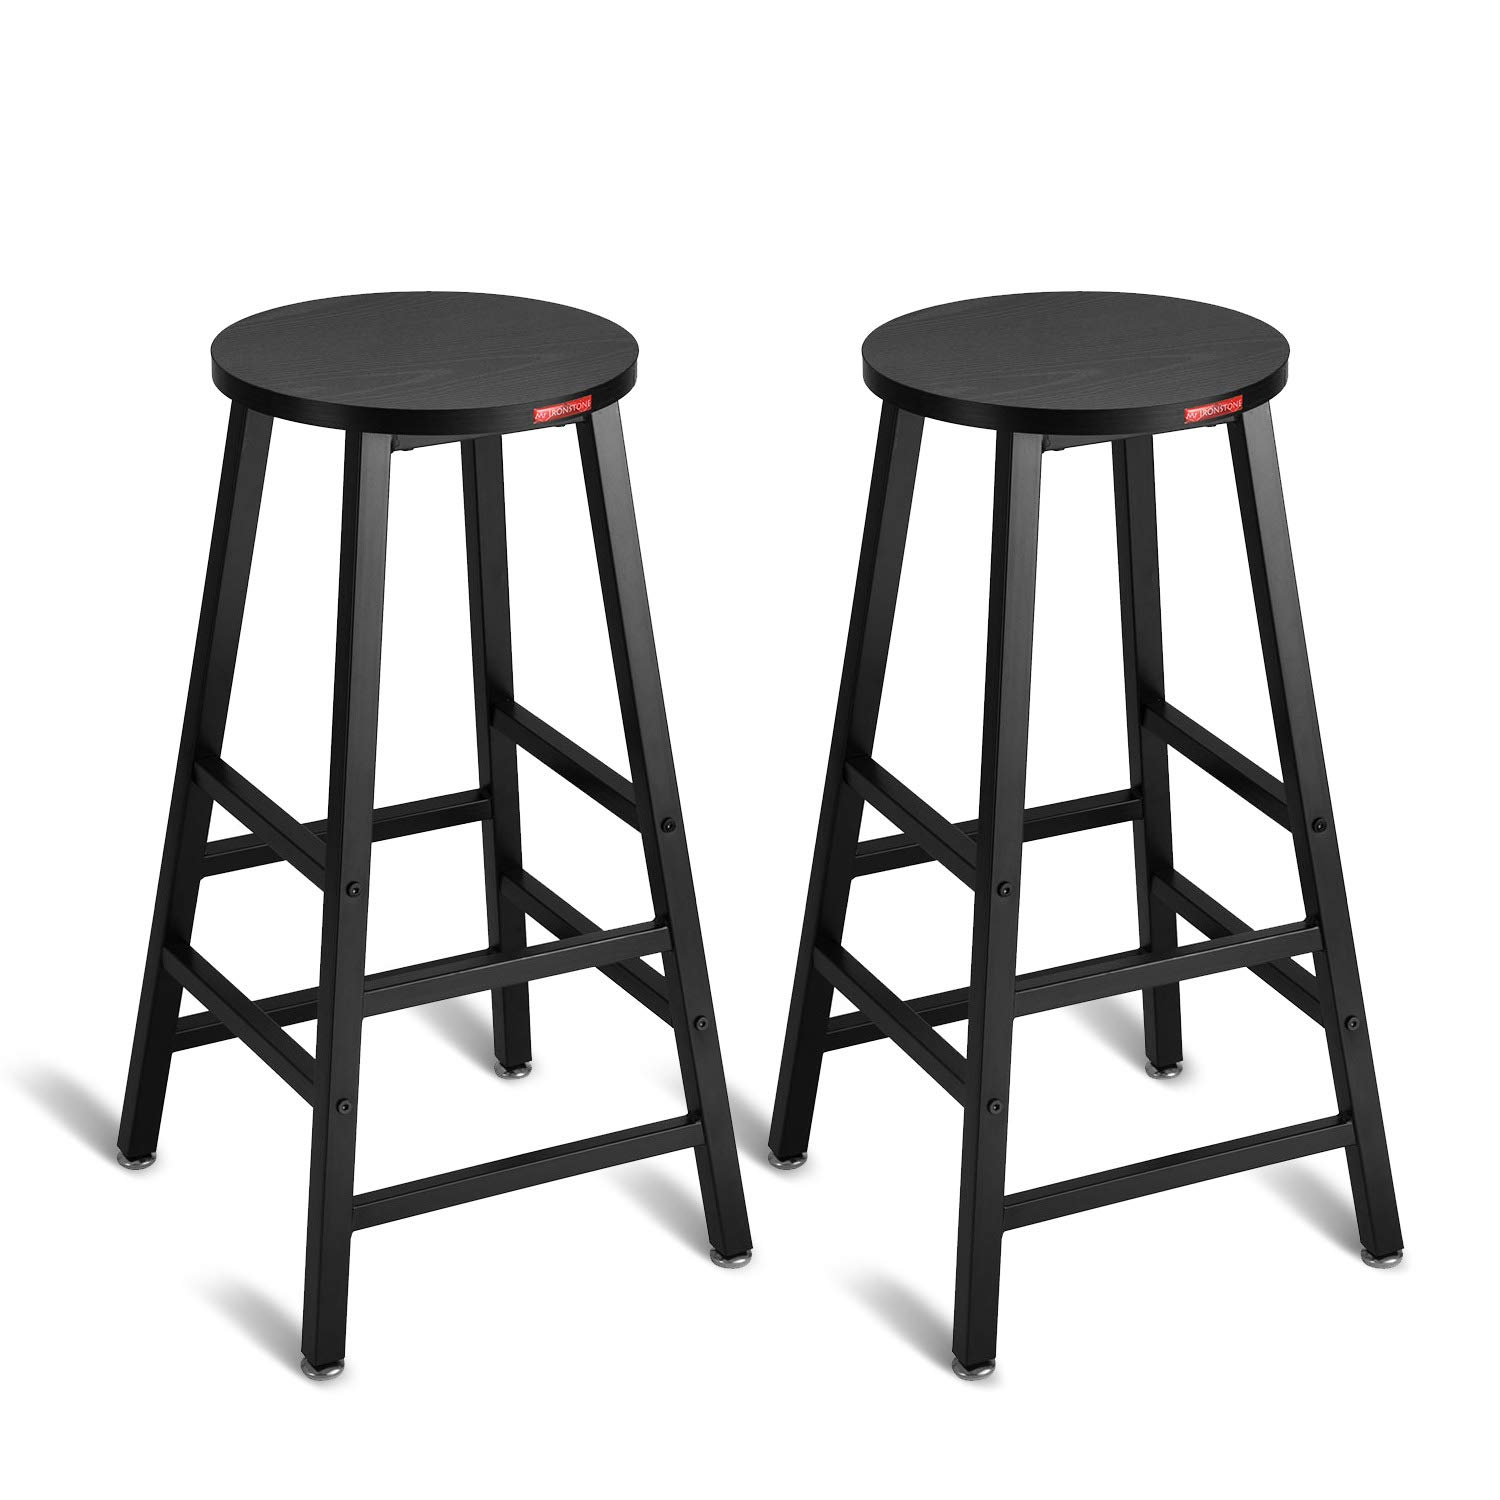 Mr IRONSTONE Pub Height Bar Stools Set of 2 , 27.7'' Pub Dining Height Stools Bistro Table Chairs (Black) by Mr IRONSTONE